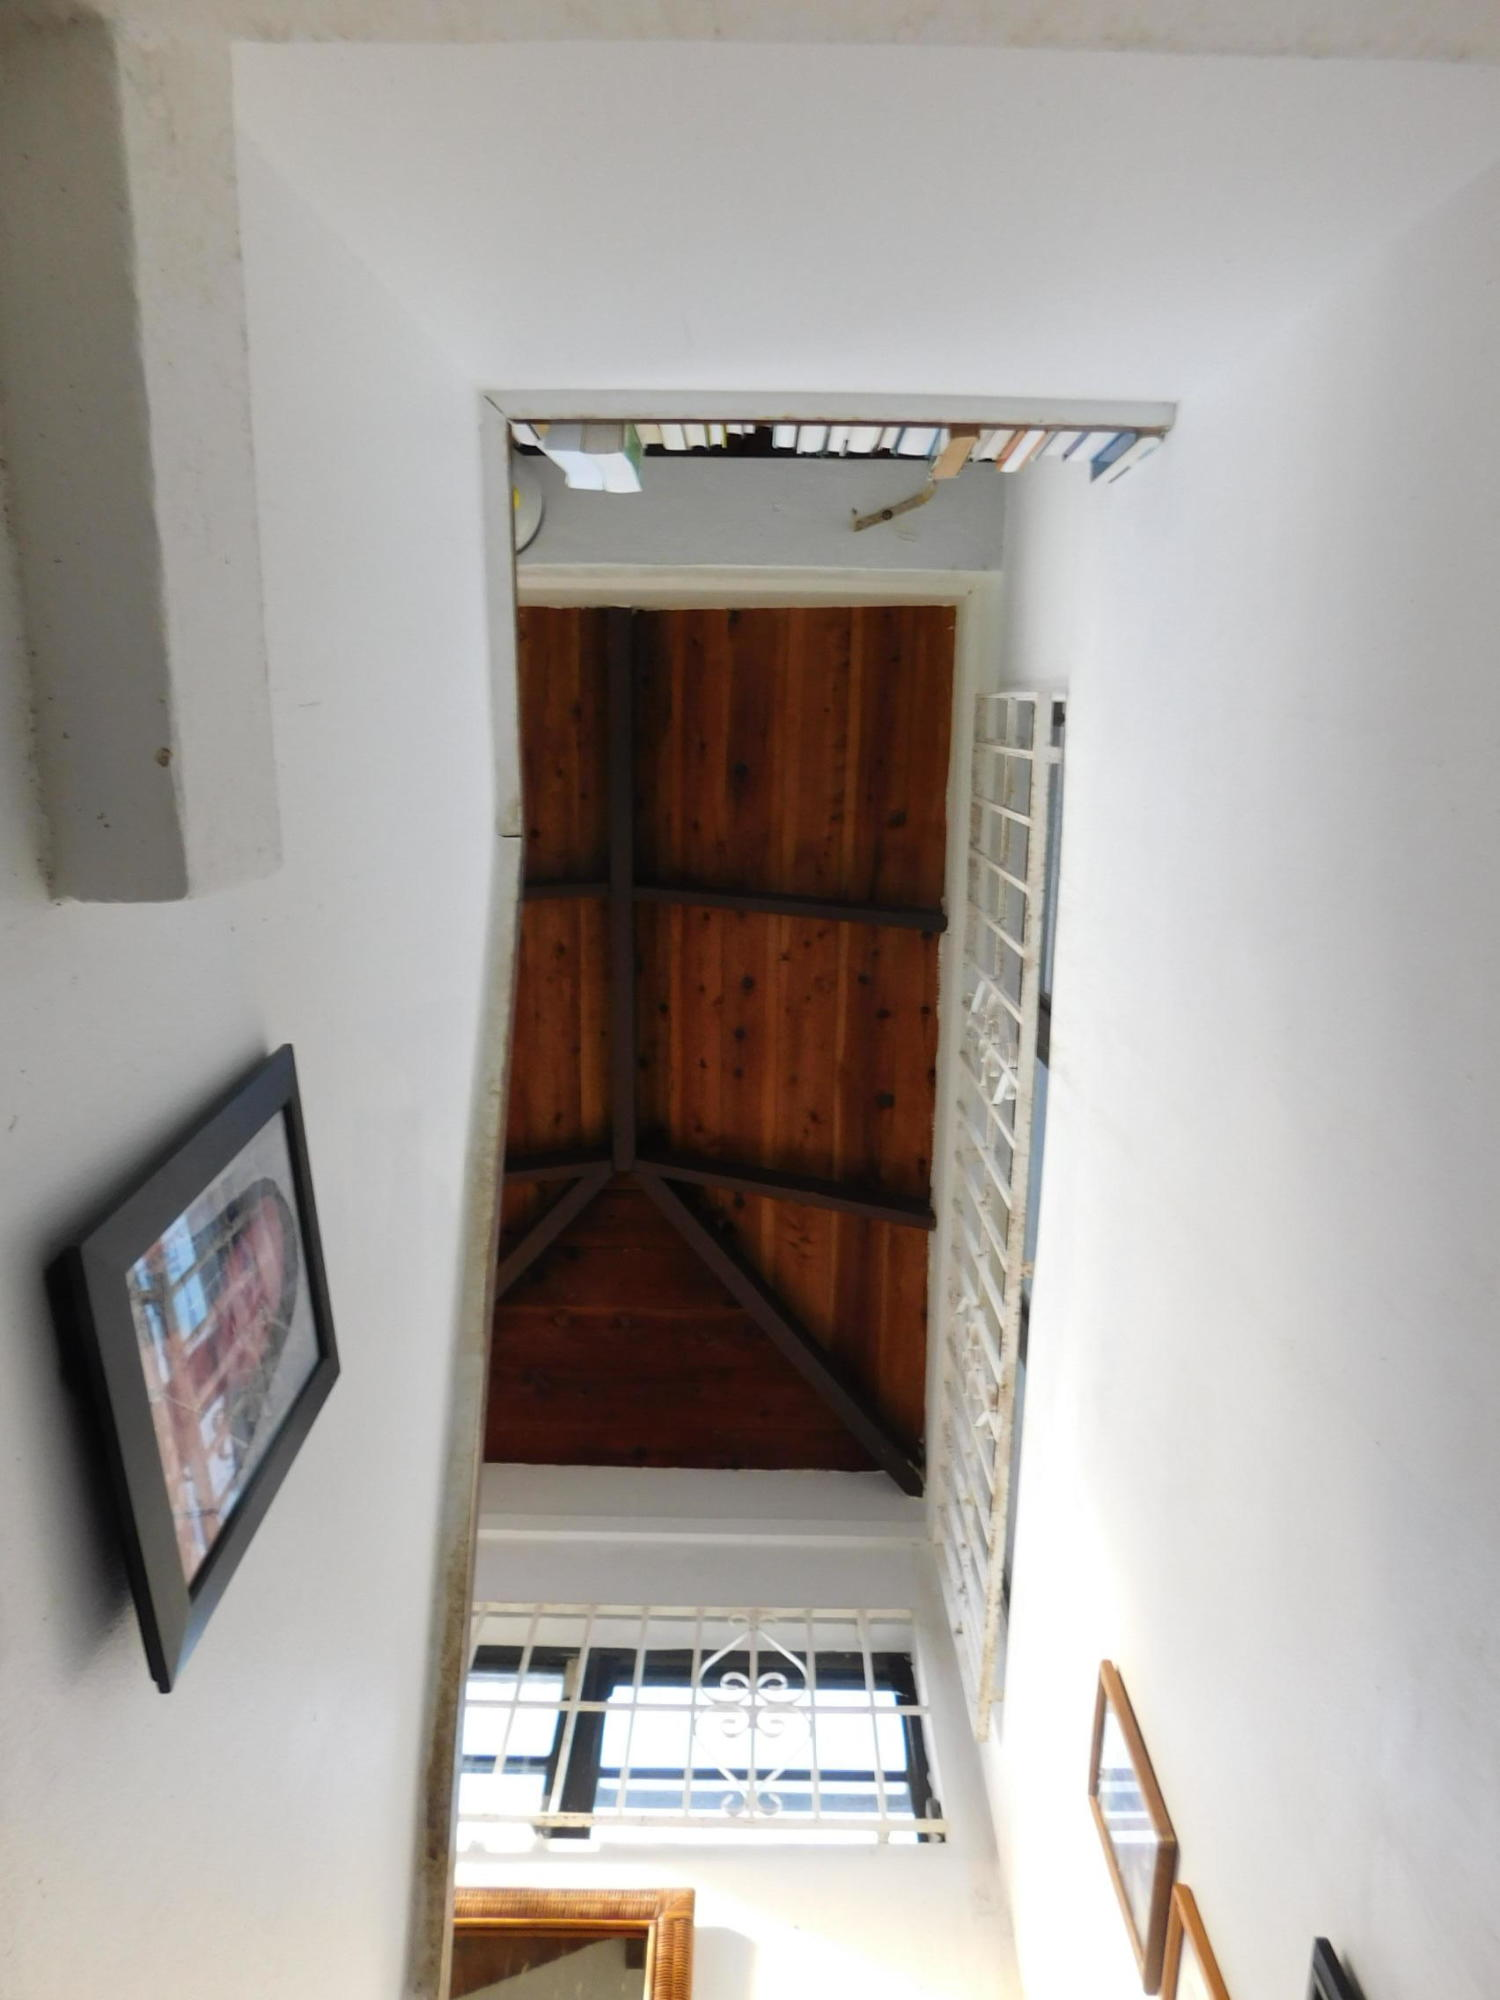 stairwell to roof